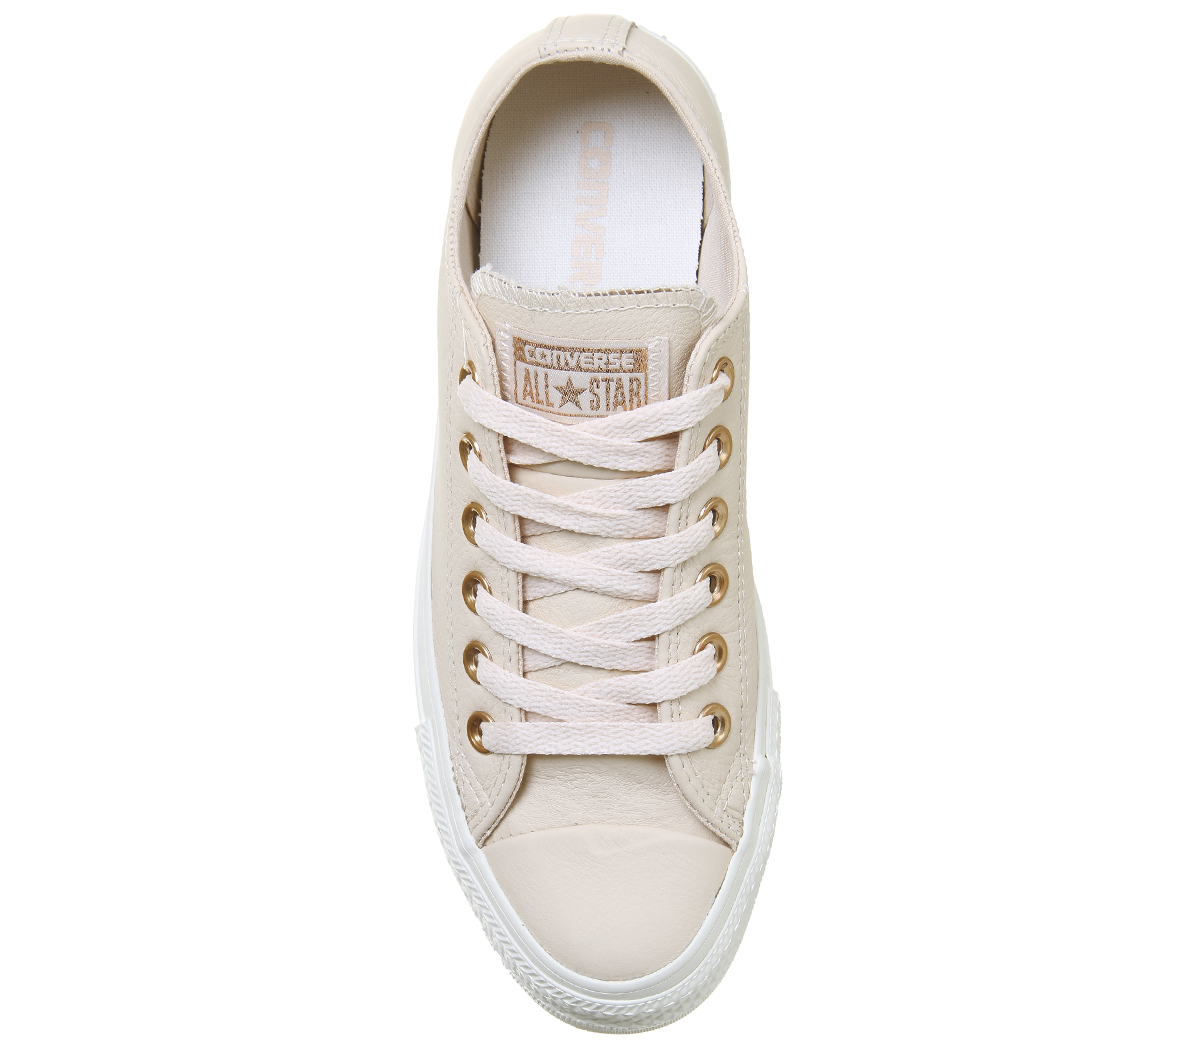 13e41abf6a Sentinel Womens Converse All Star Low Leather EGRET PASTEL ROSE TAN BLUSH  GOLD EXCLUSIVE